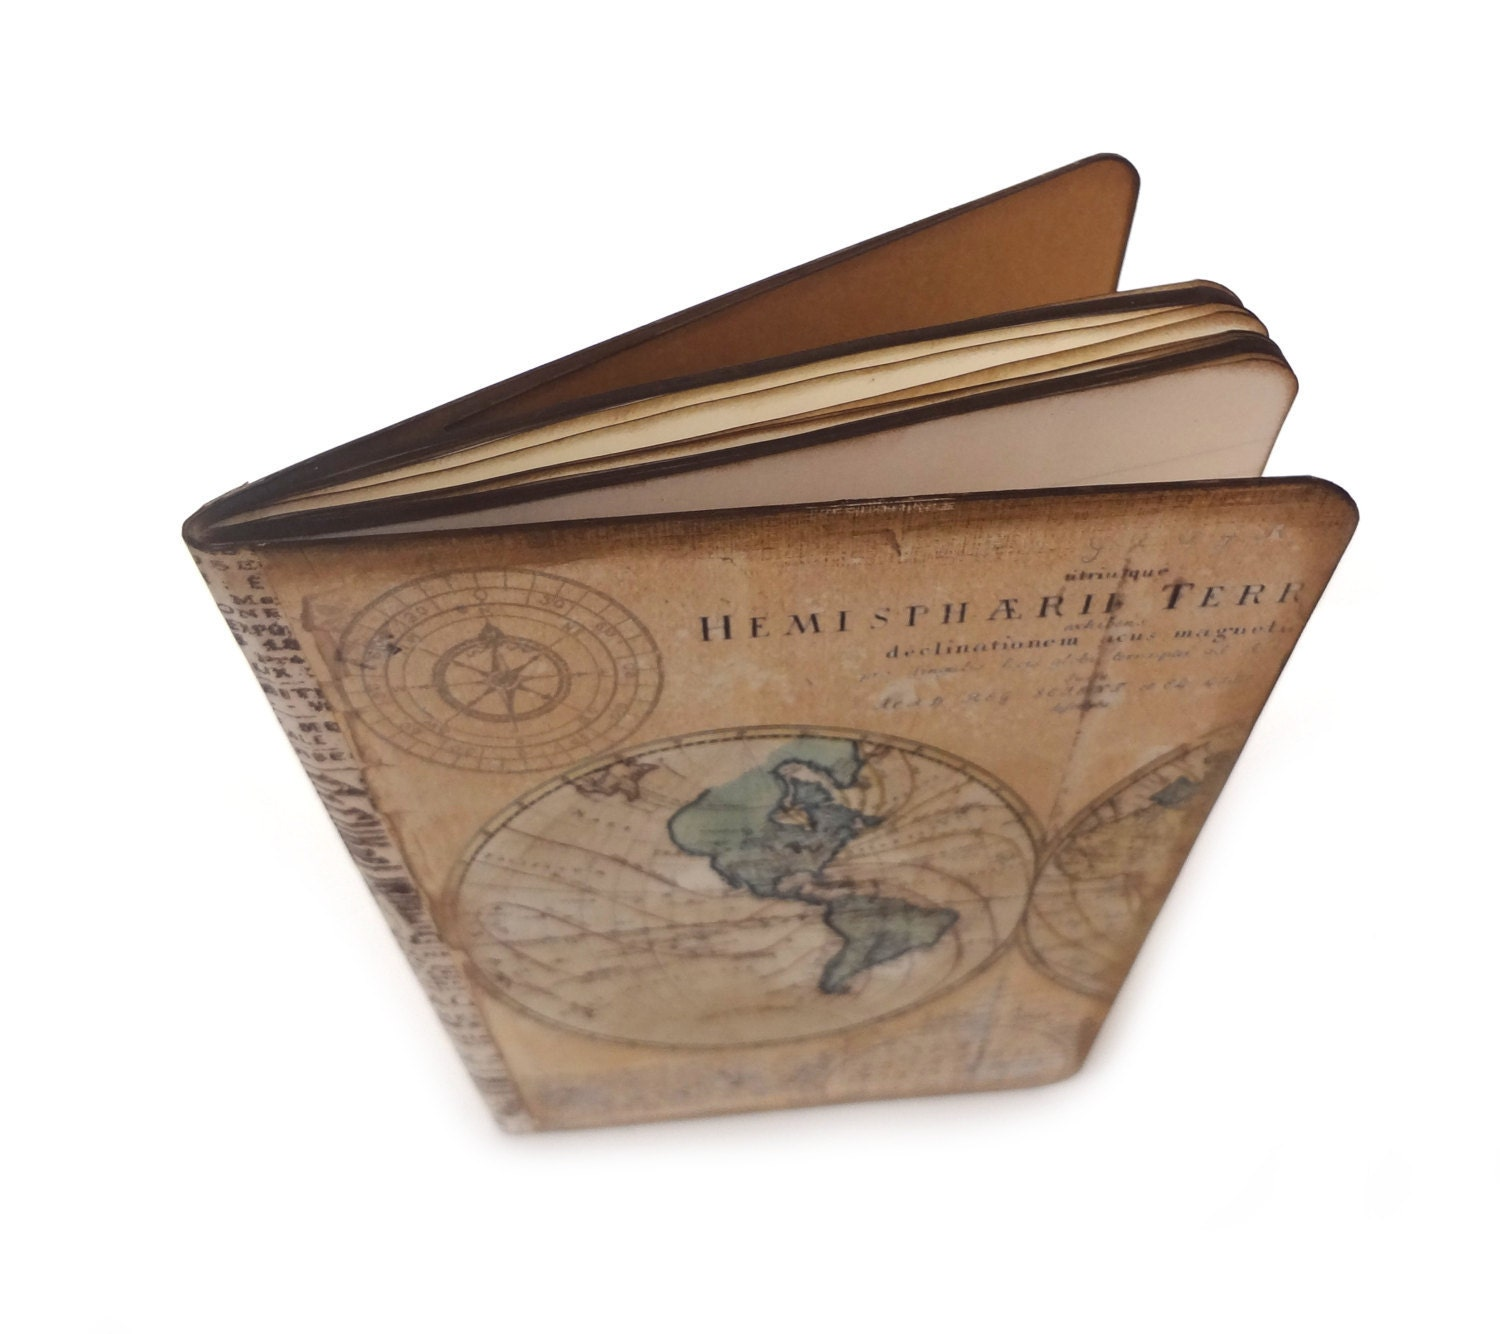 Map travel journal old world map travel notebook compass zoom gumiabroncs Gallery